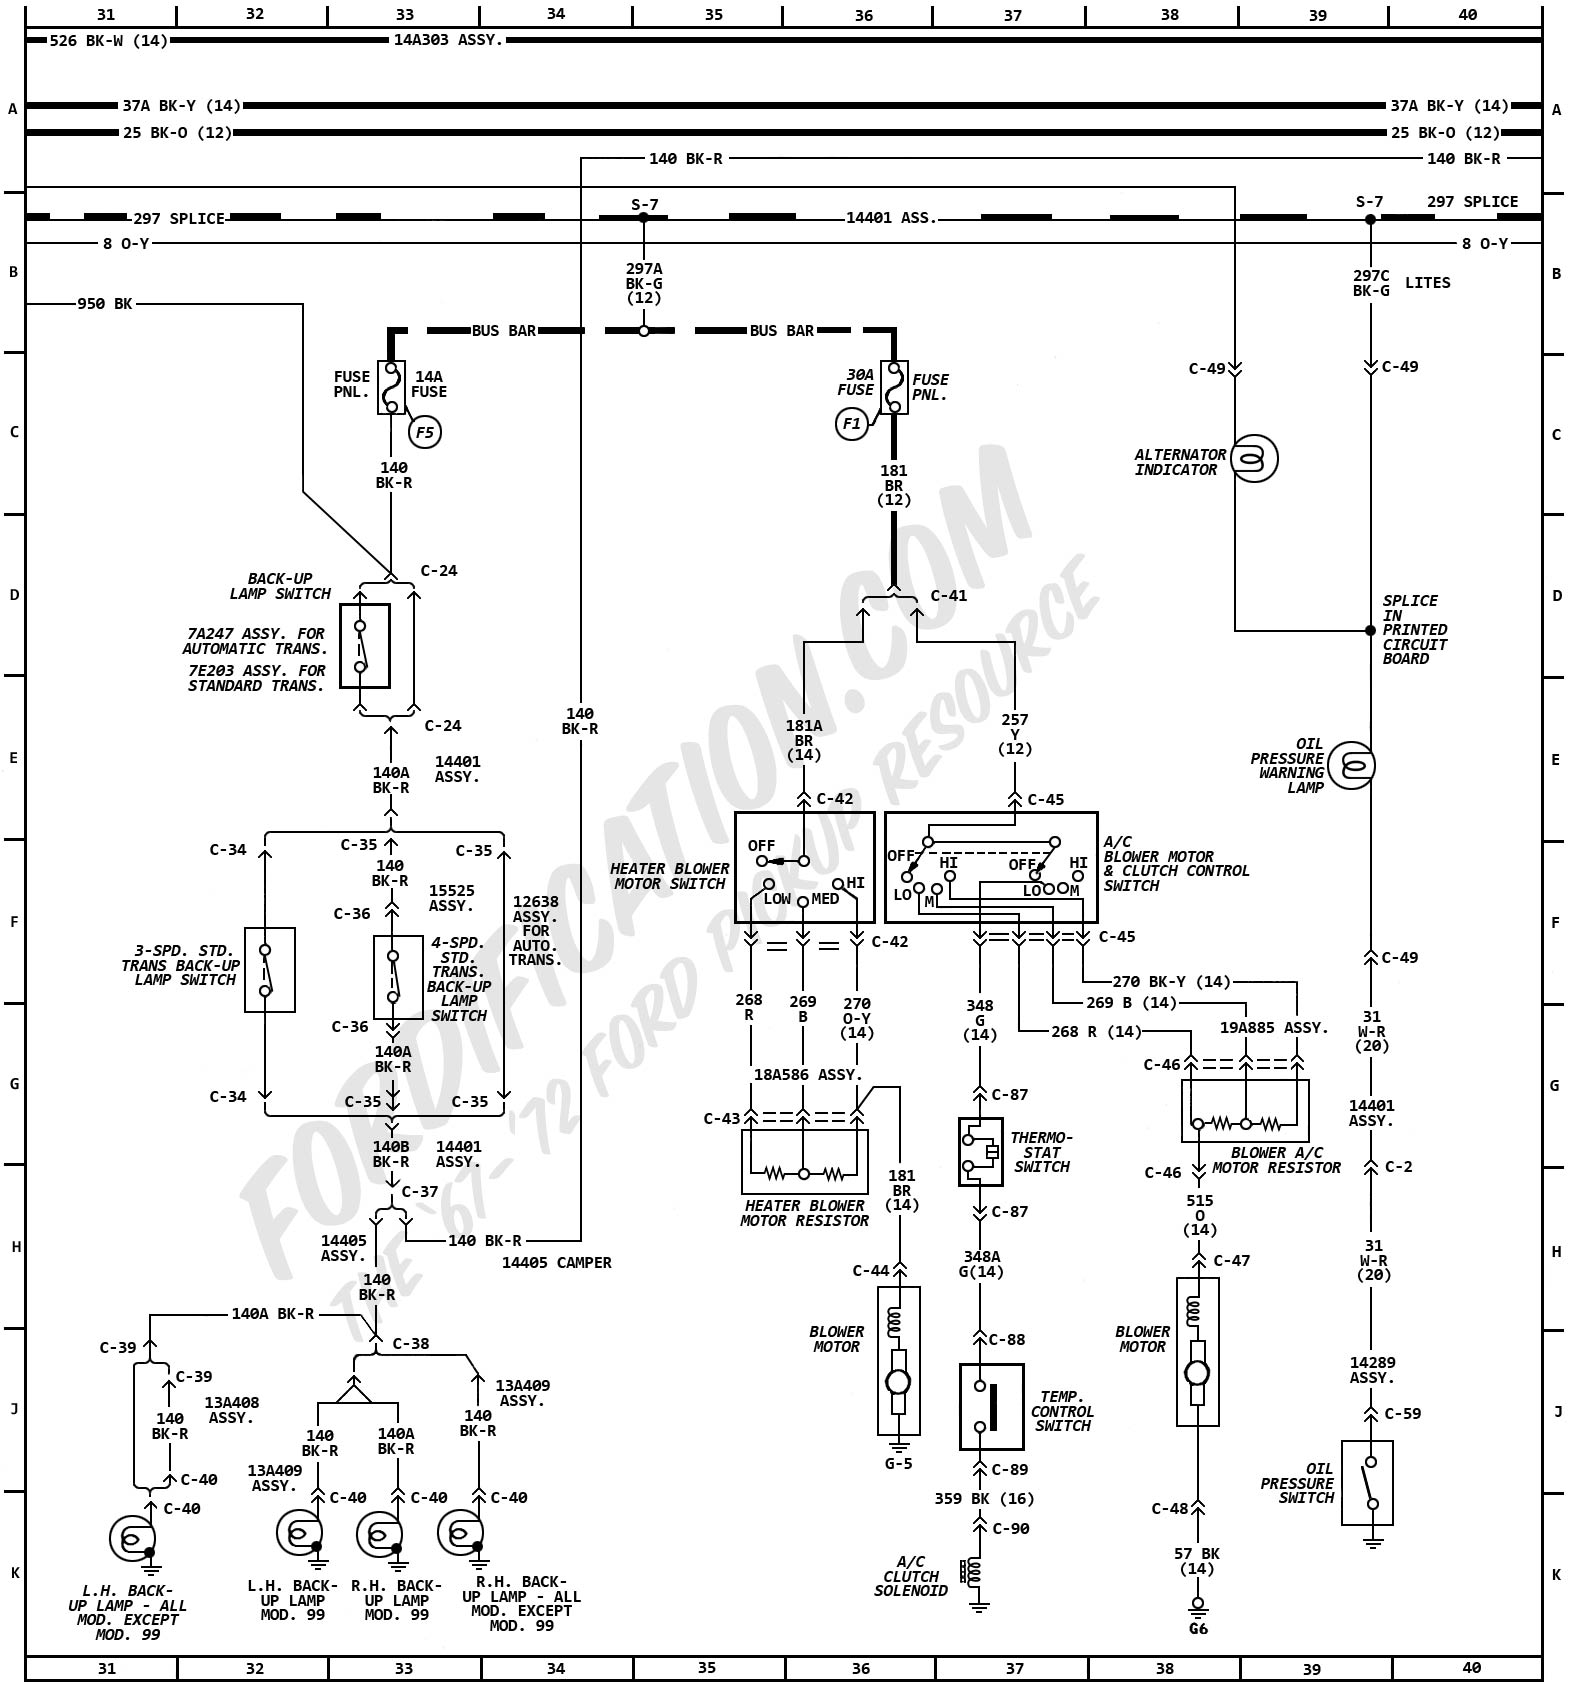 1972MasterWiring_04 gva 24 wiring diagram outlet wiring \u2022 wiring diagrams j squared co shure 514b wiring diagram at nearapp.co